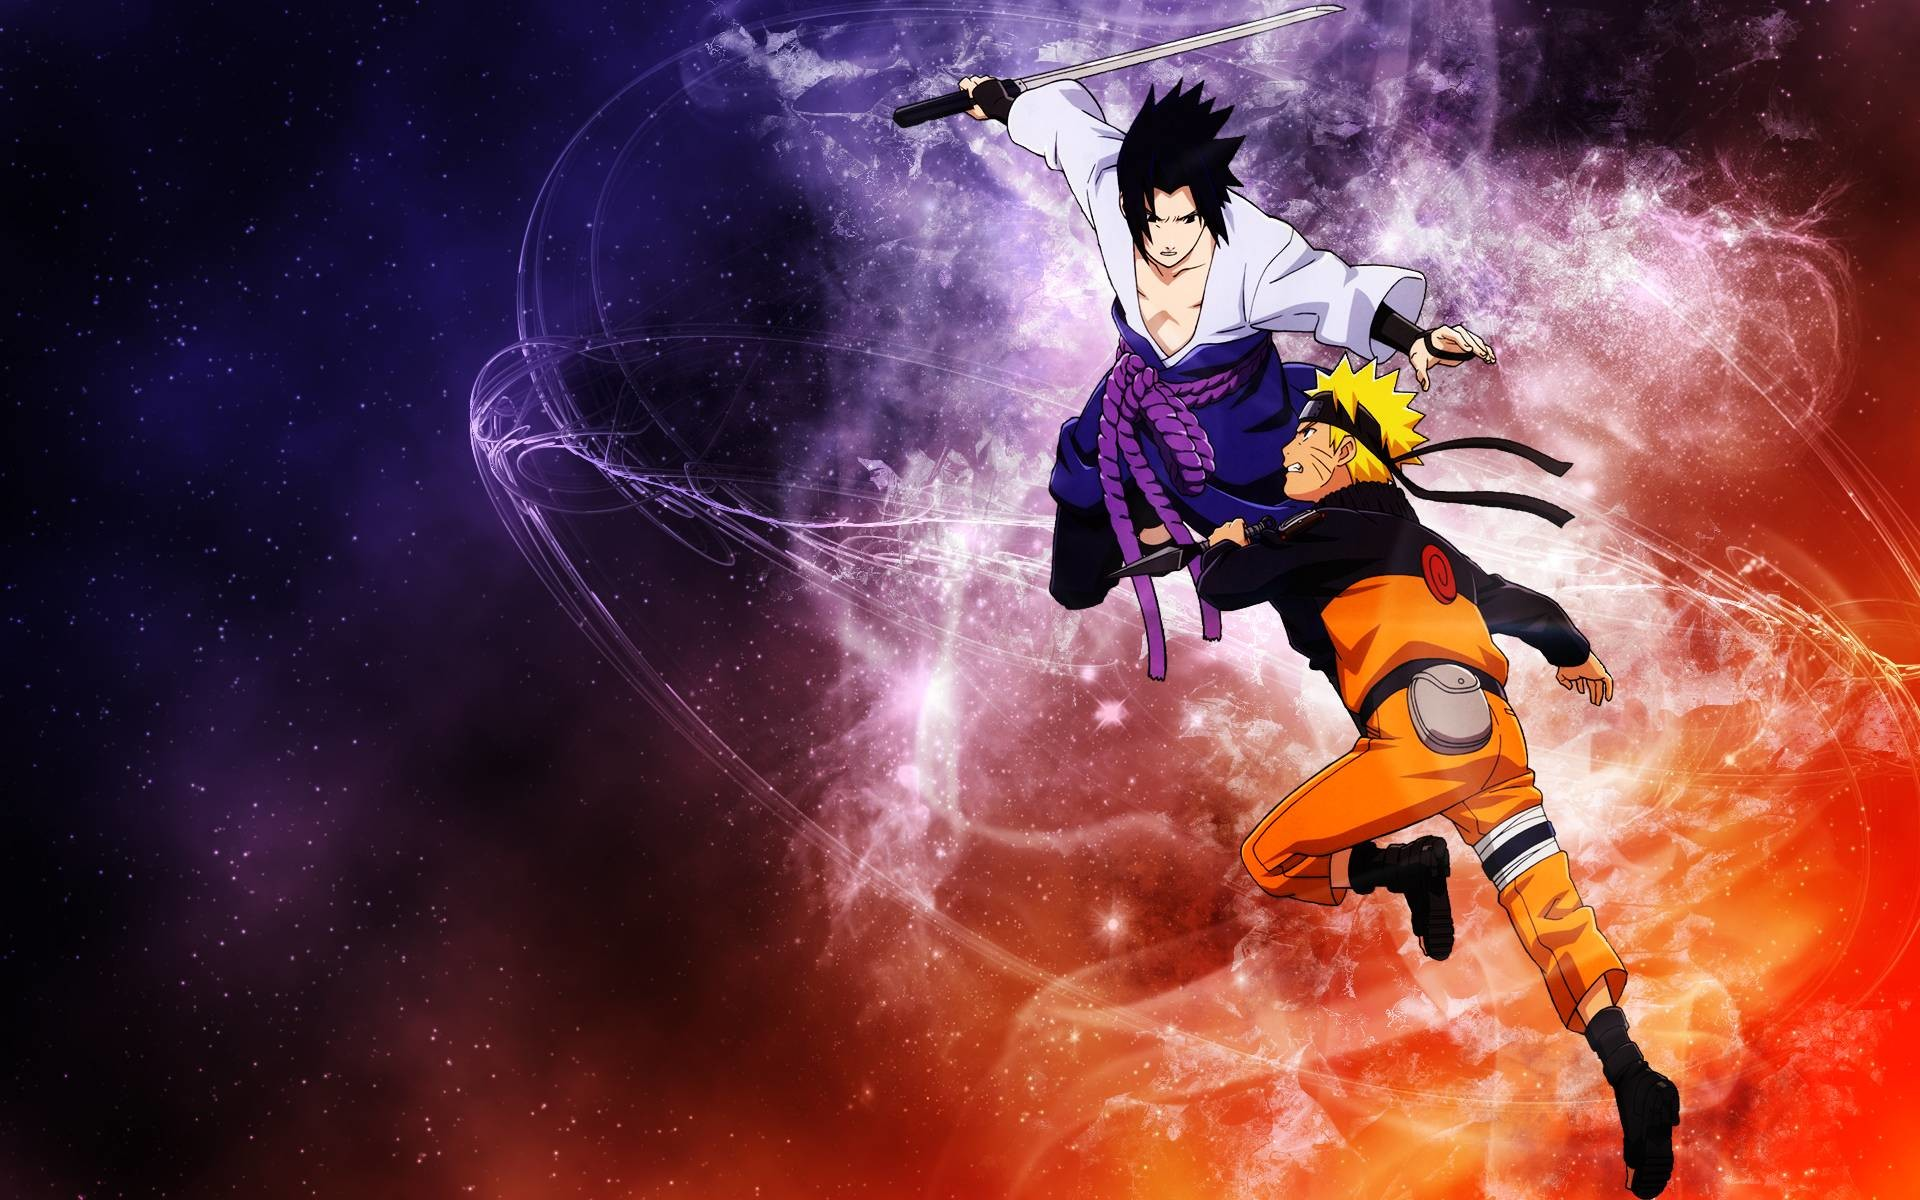 1920x1200 Pain Naruto HD Wallpapers Backgrounds Wallpaper | HD Wallpapers | Pinterest  | Hd wallpaper, Wallpaper and Wallpaper backgrounds